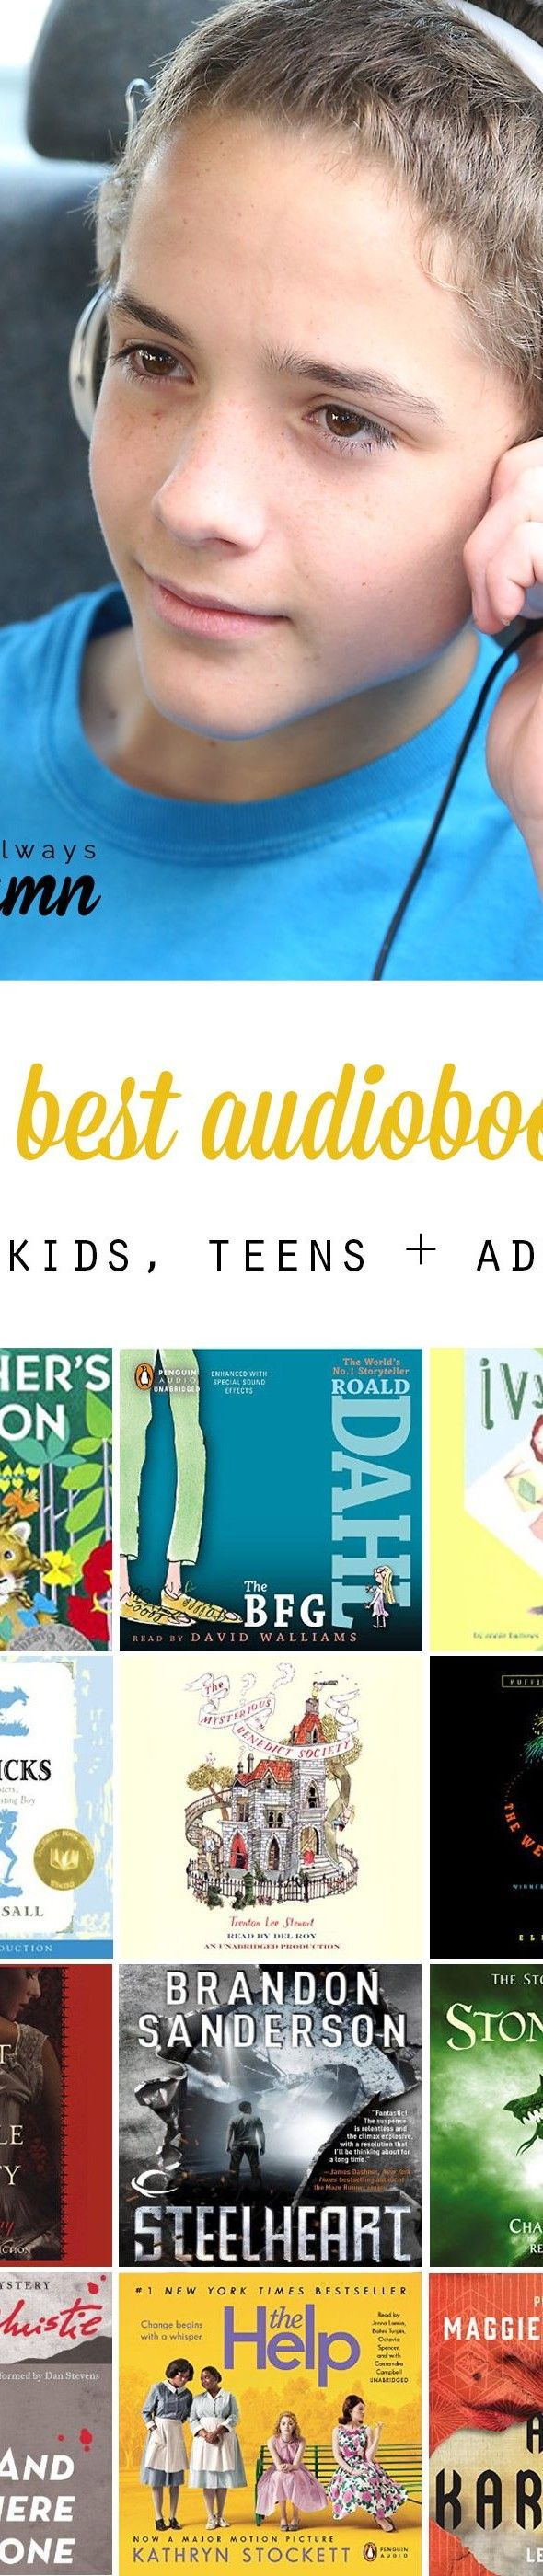 freeaudiobook audiobook Download Available Formats